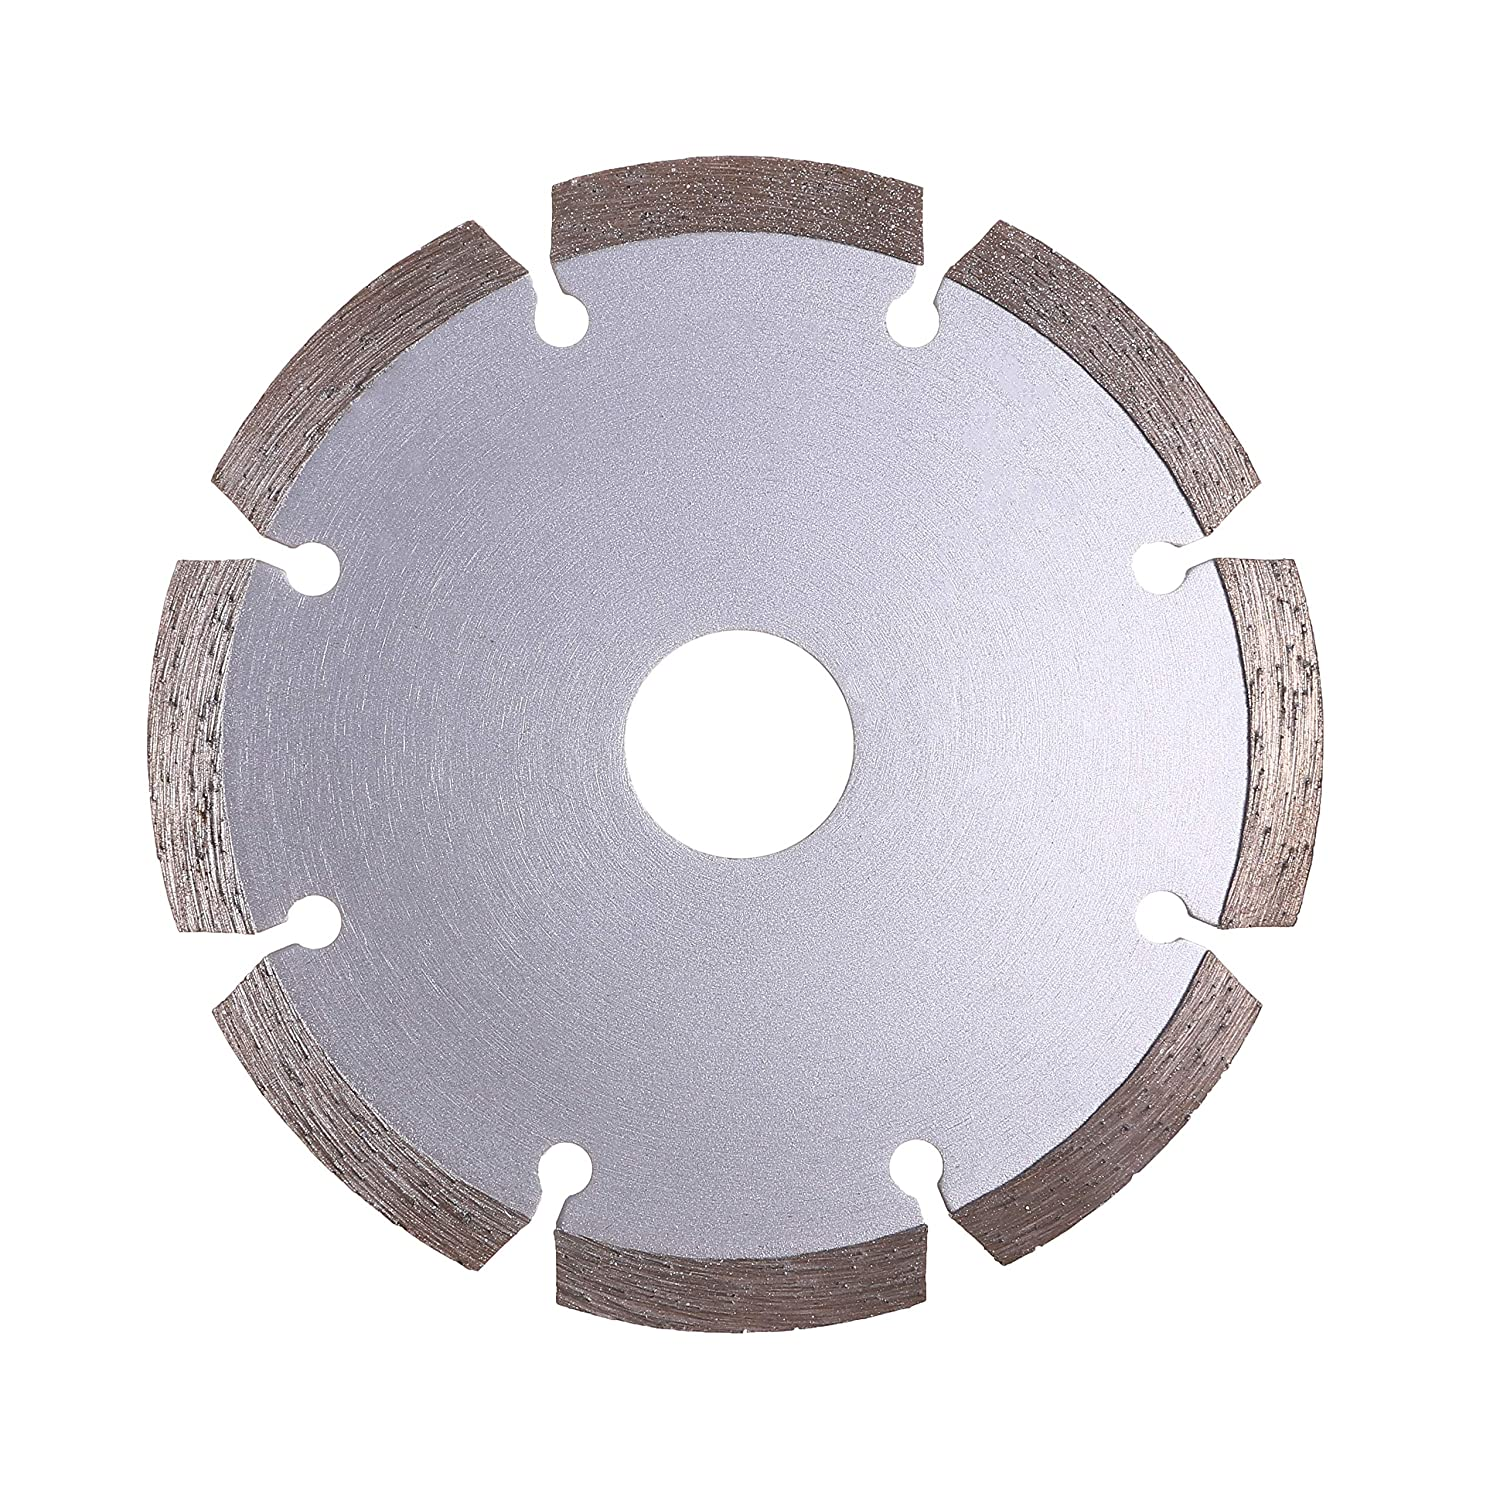 6 inch Dry or Wet Cutting Saw Segmented Import General Di Power Philadelphia Mall Purpose